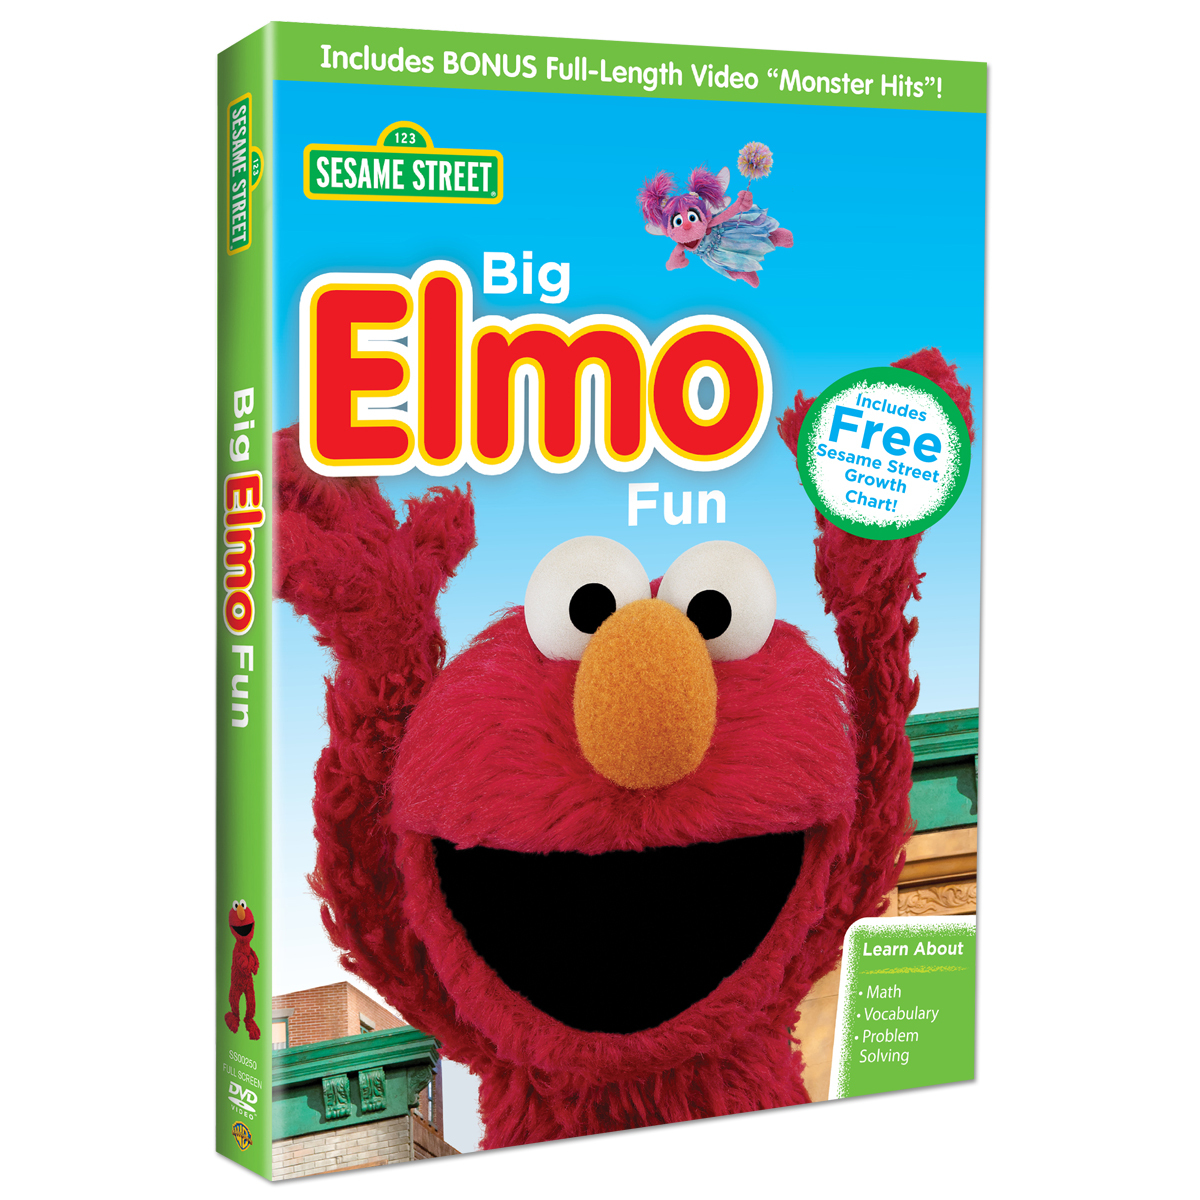 Sesame Street: Big Elmo Fun DVD